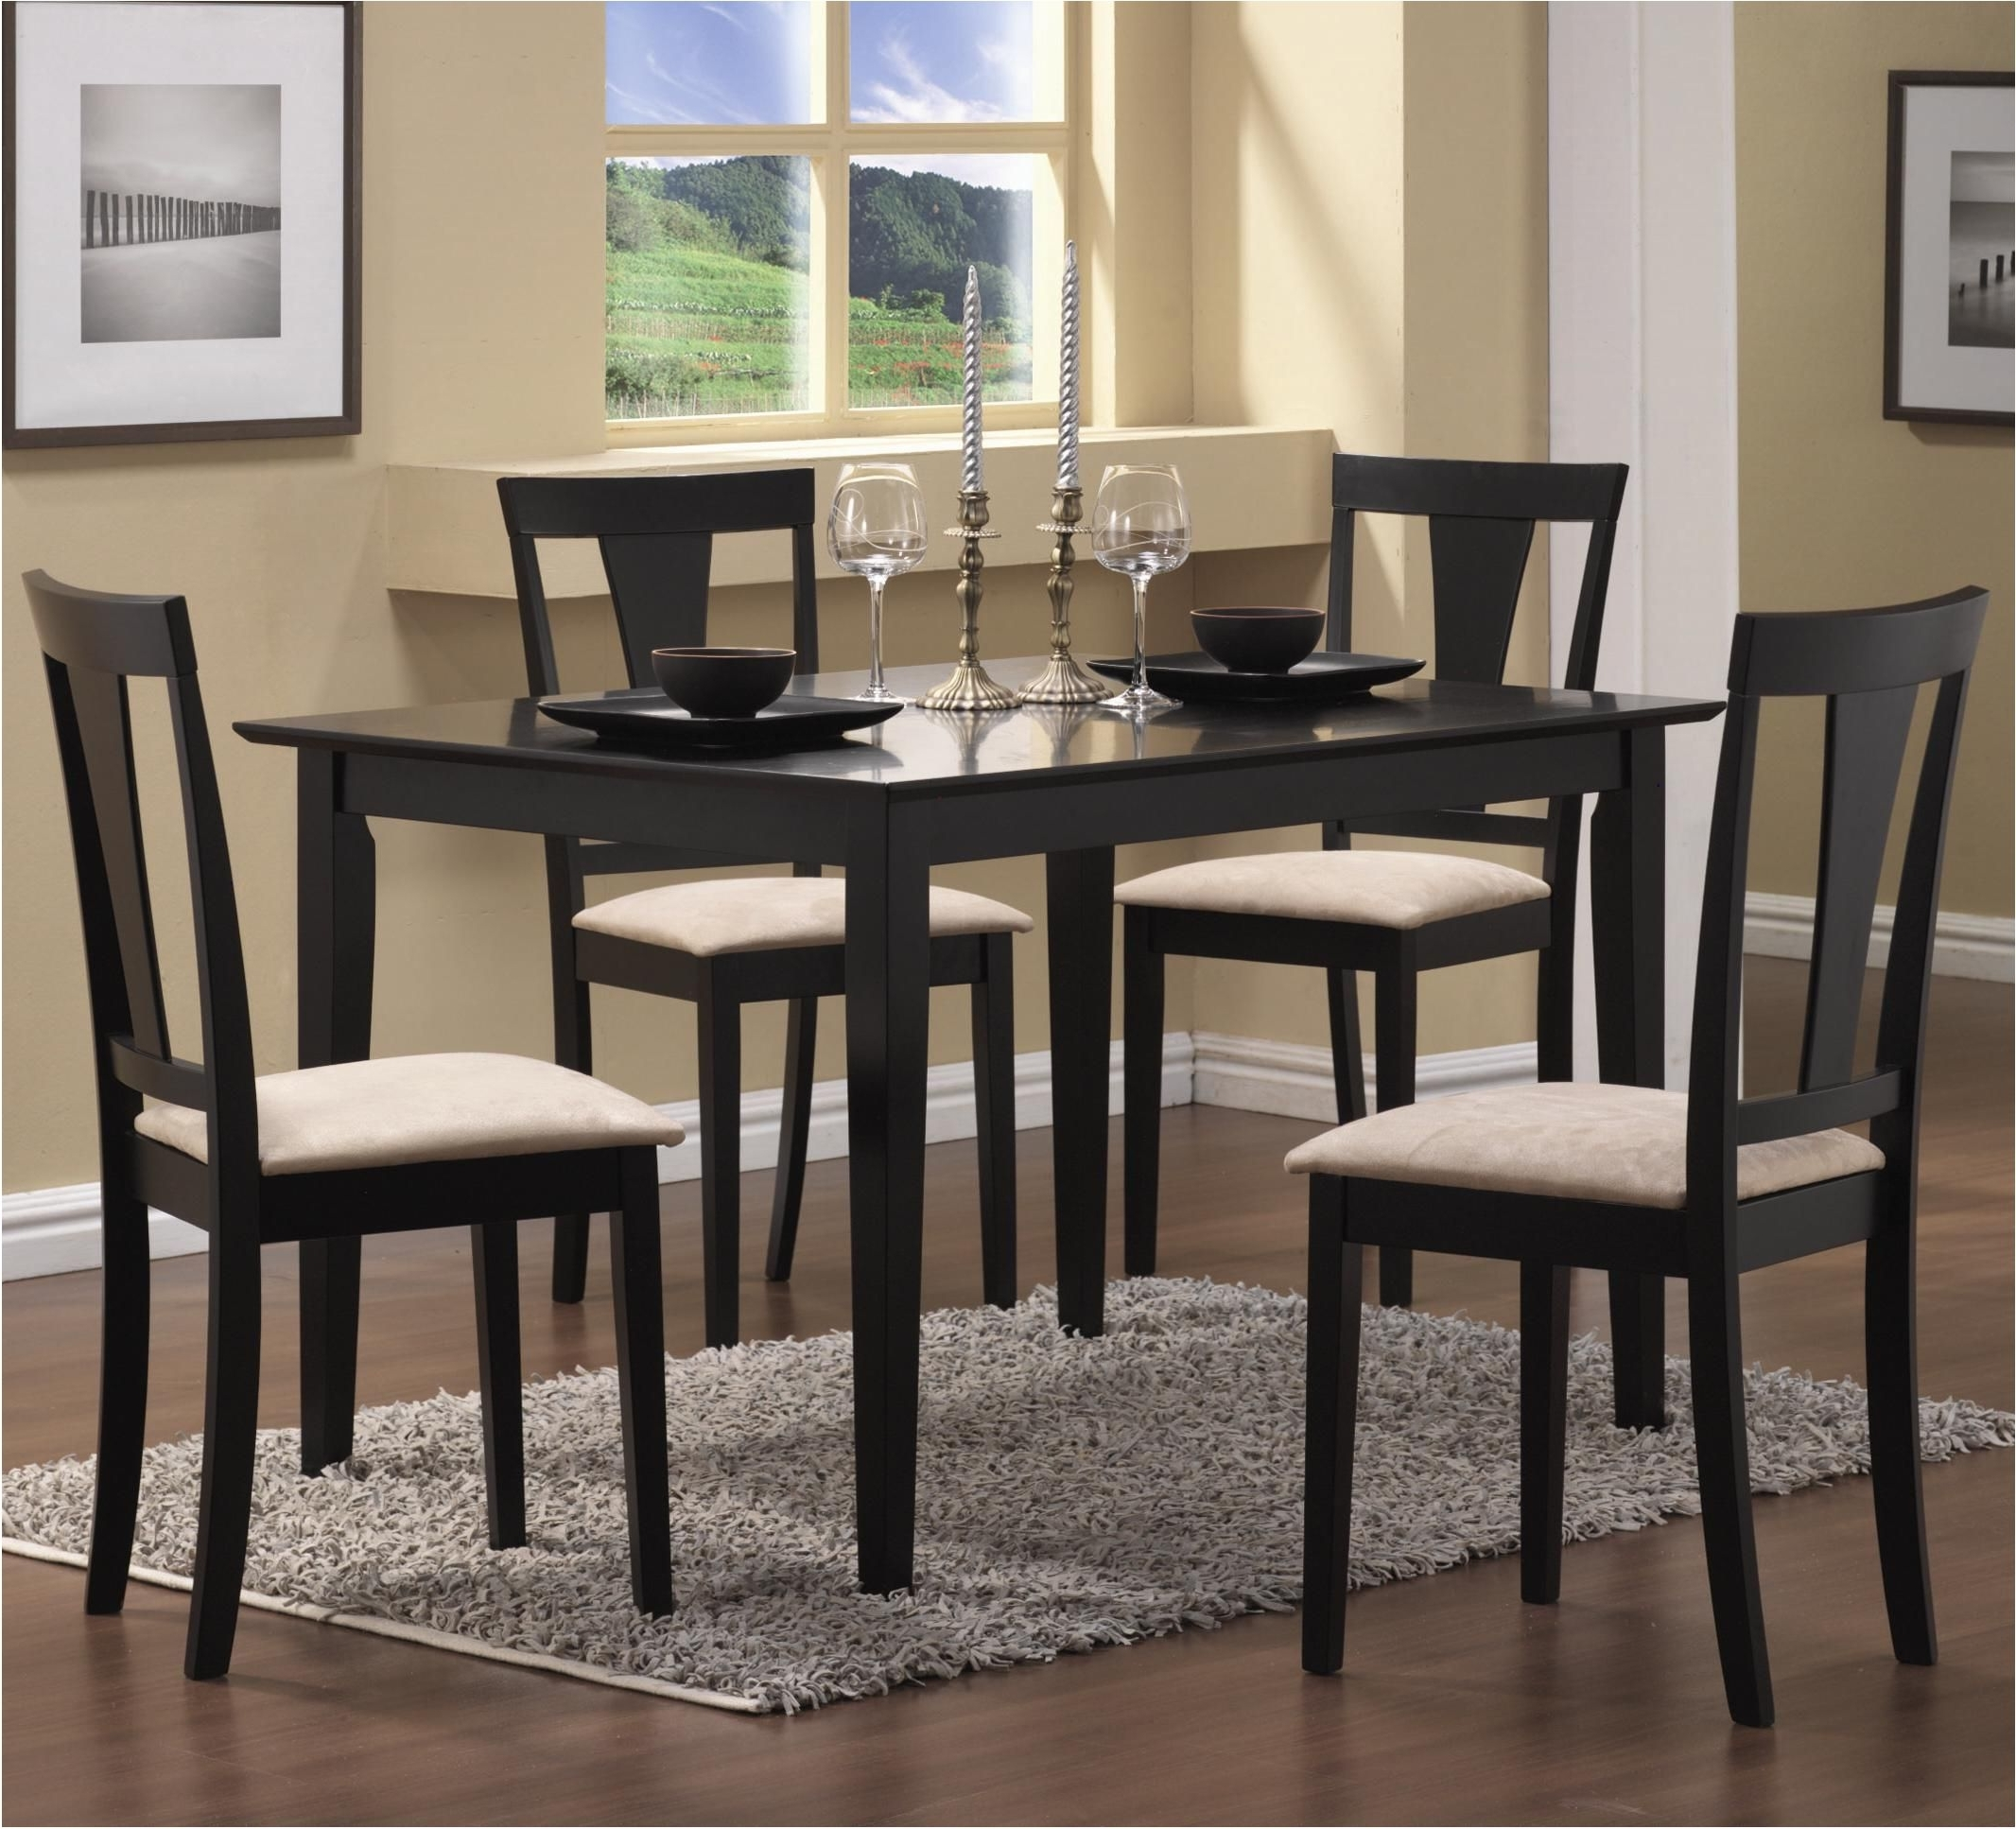 Terrific Cool Cheap Small Dining Sets 7 Round Oak Table Kitchen 4 Pertaining To Most Popular Cheap Dining Sets (View 2 of 25)